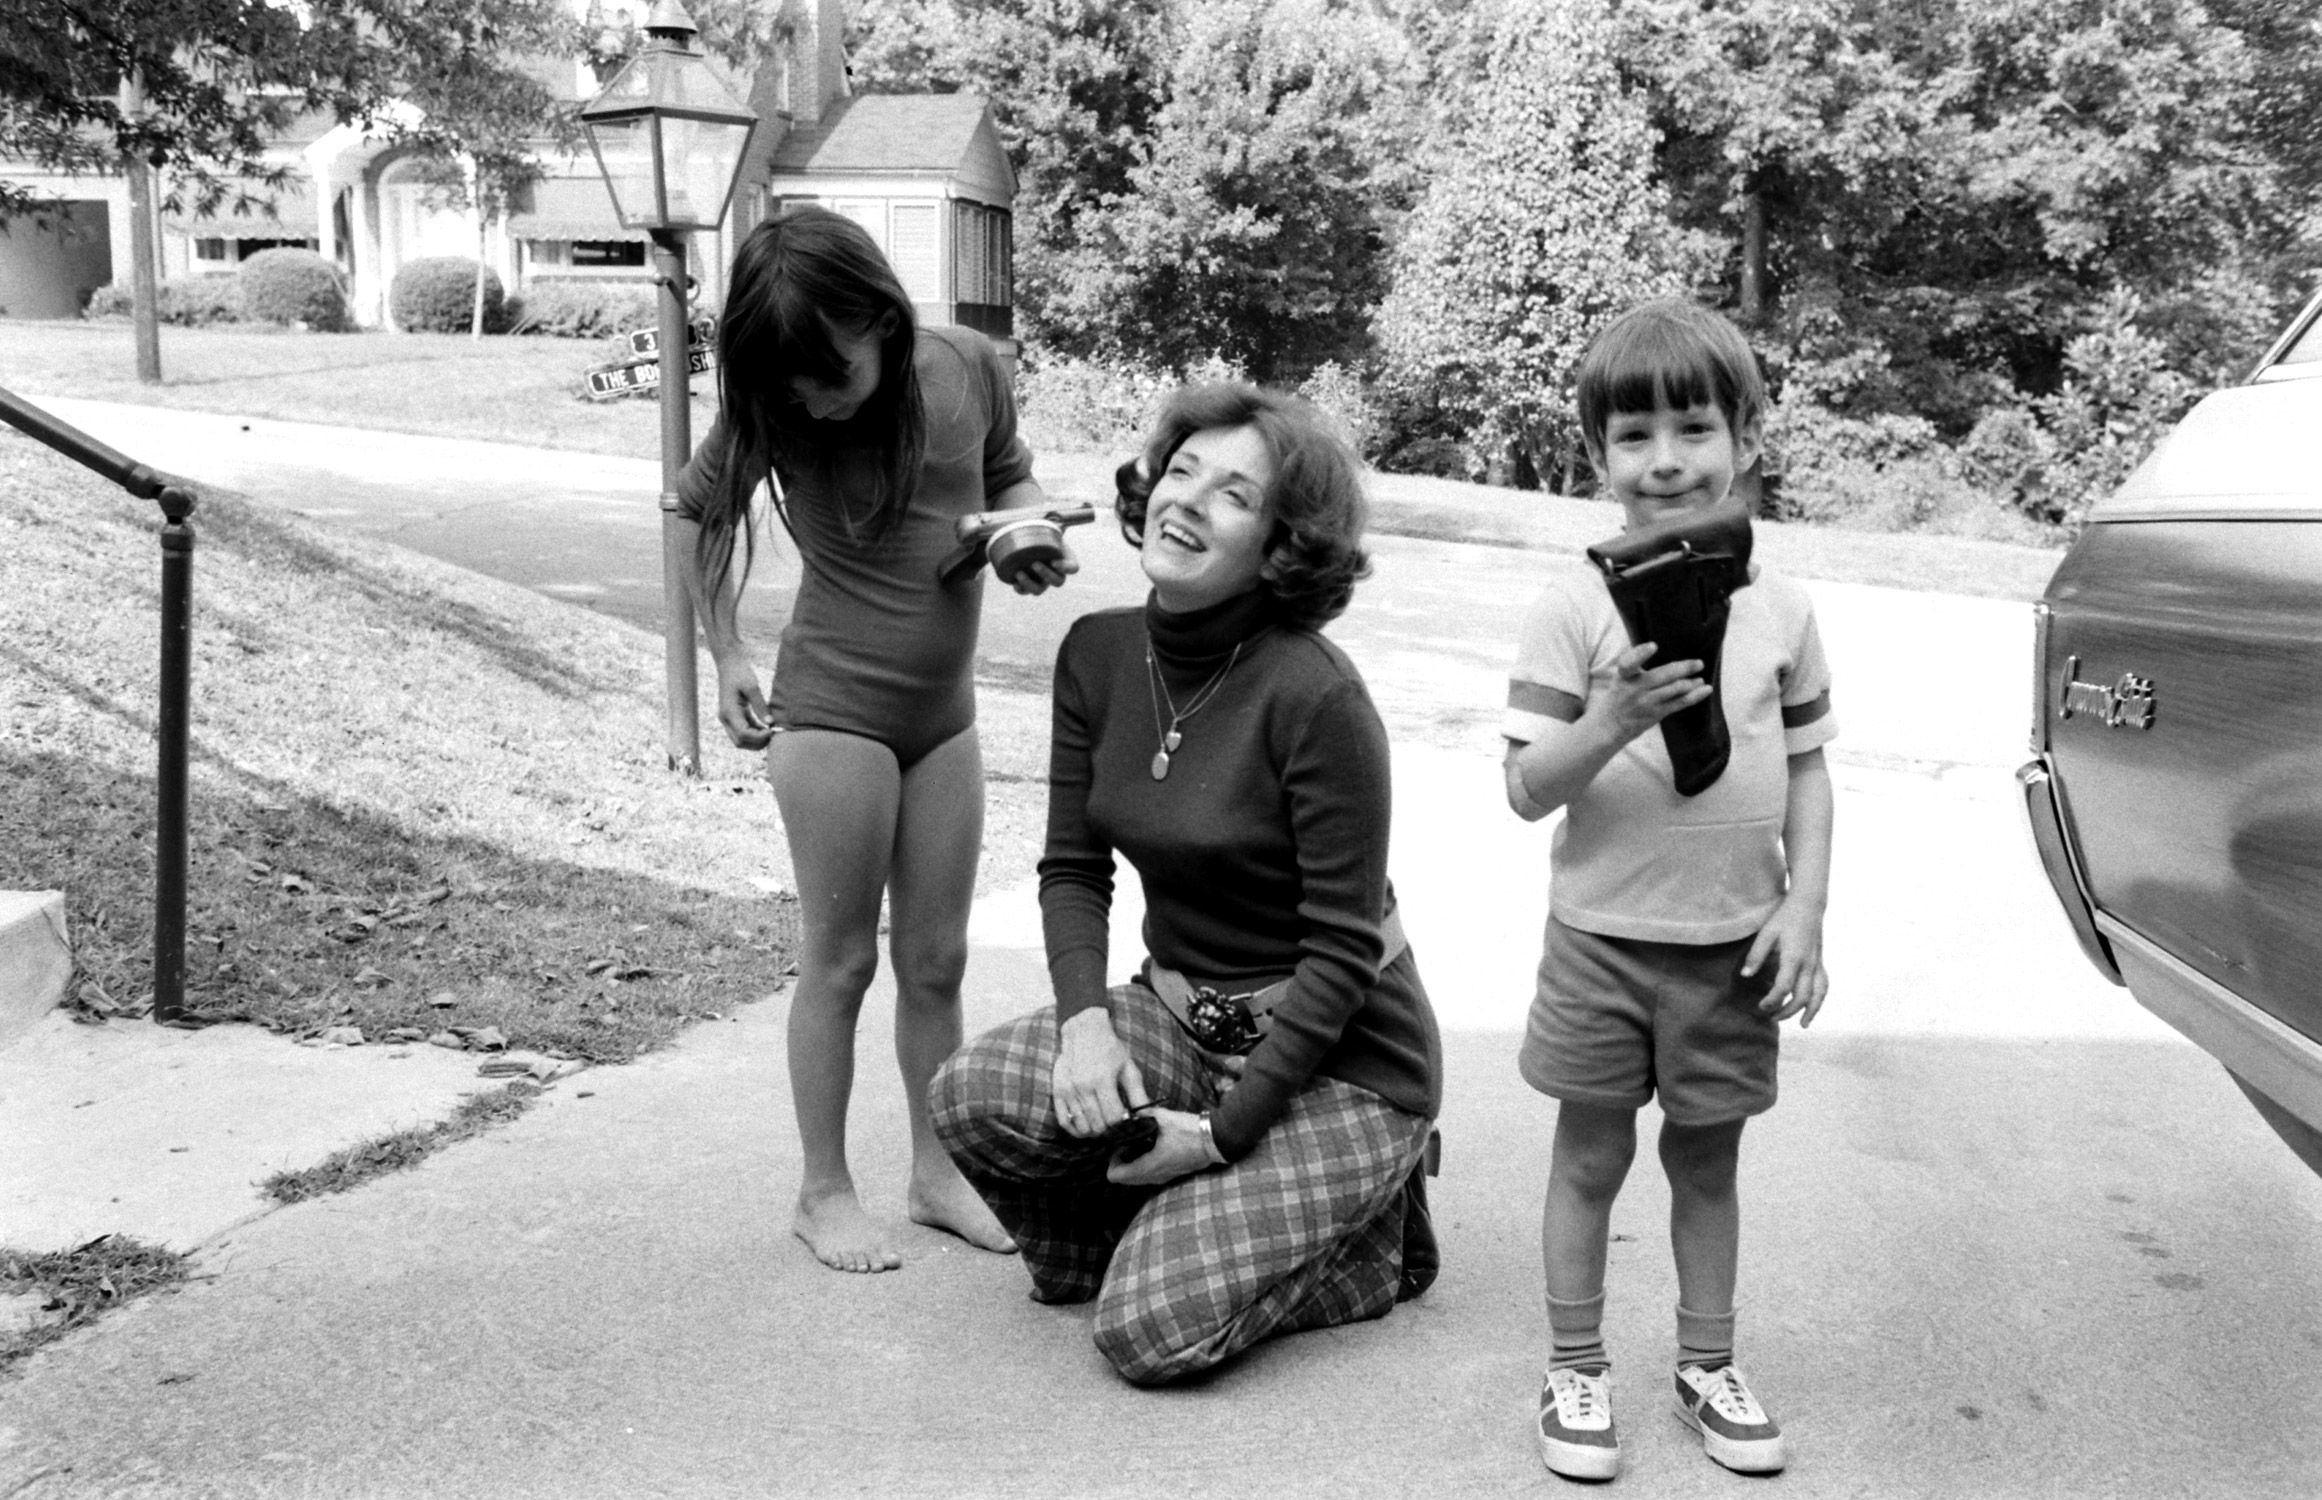 Valerie Kushner with her children Toni Jean and Mike.